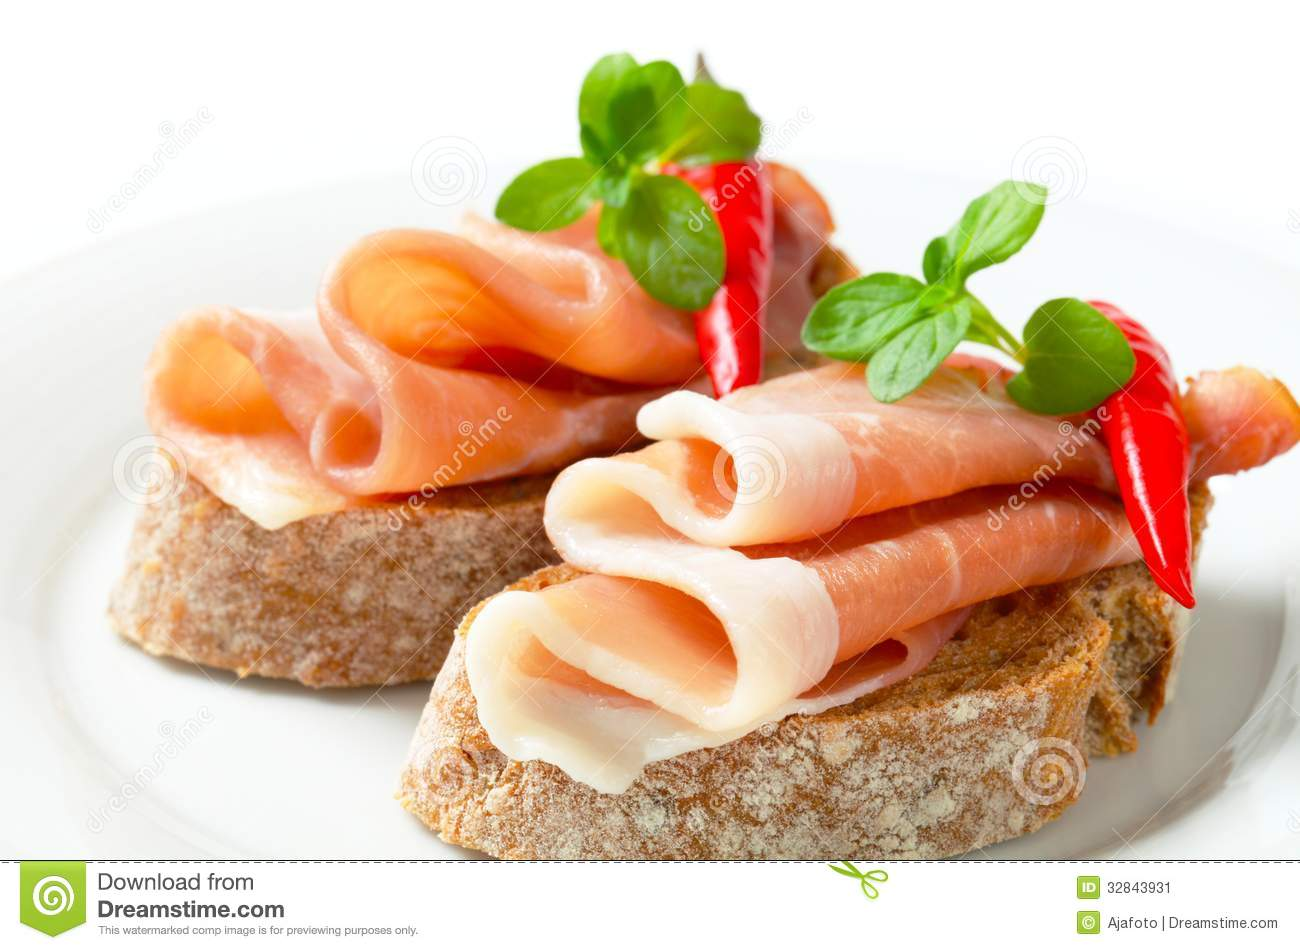 Prosciutto open faced sandwiches garnished with red chili peppers.